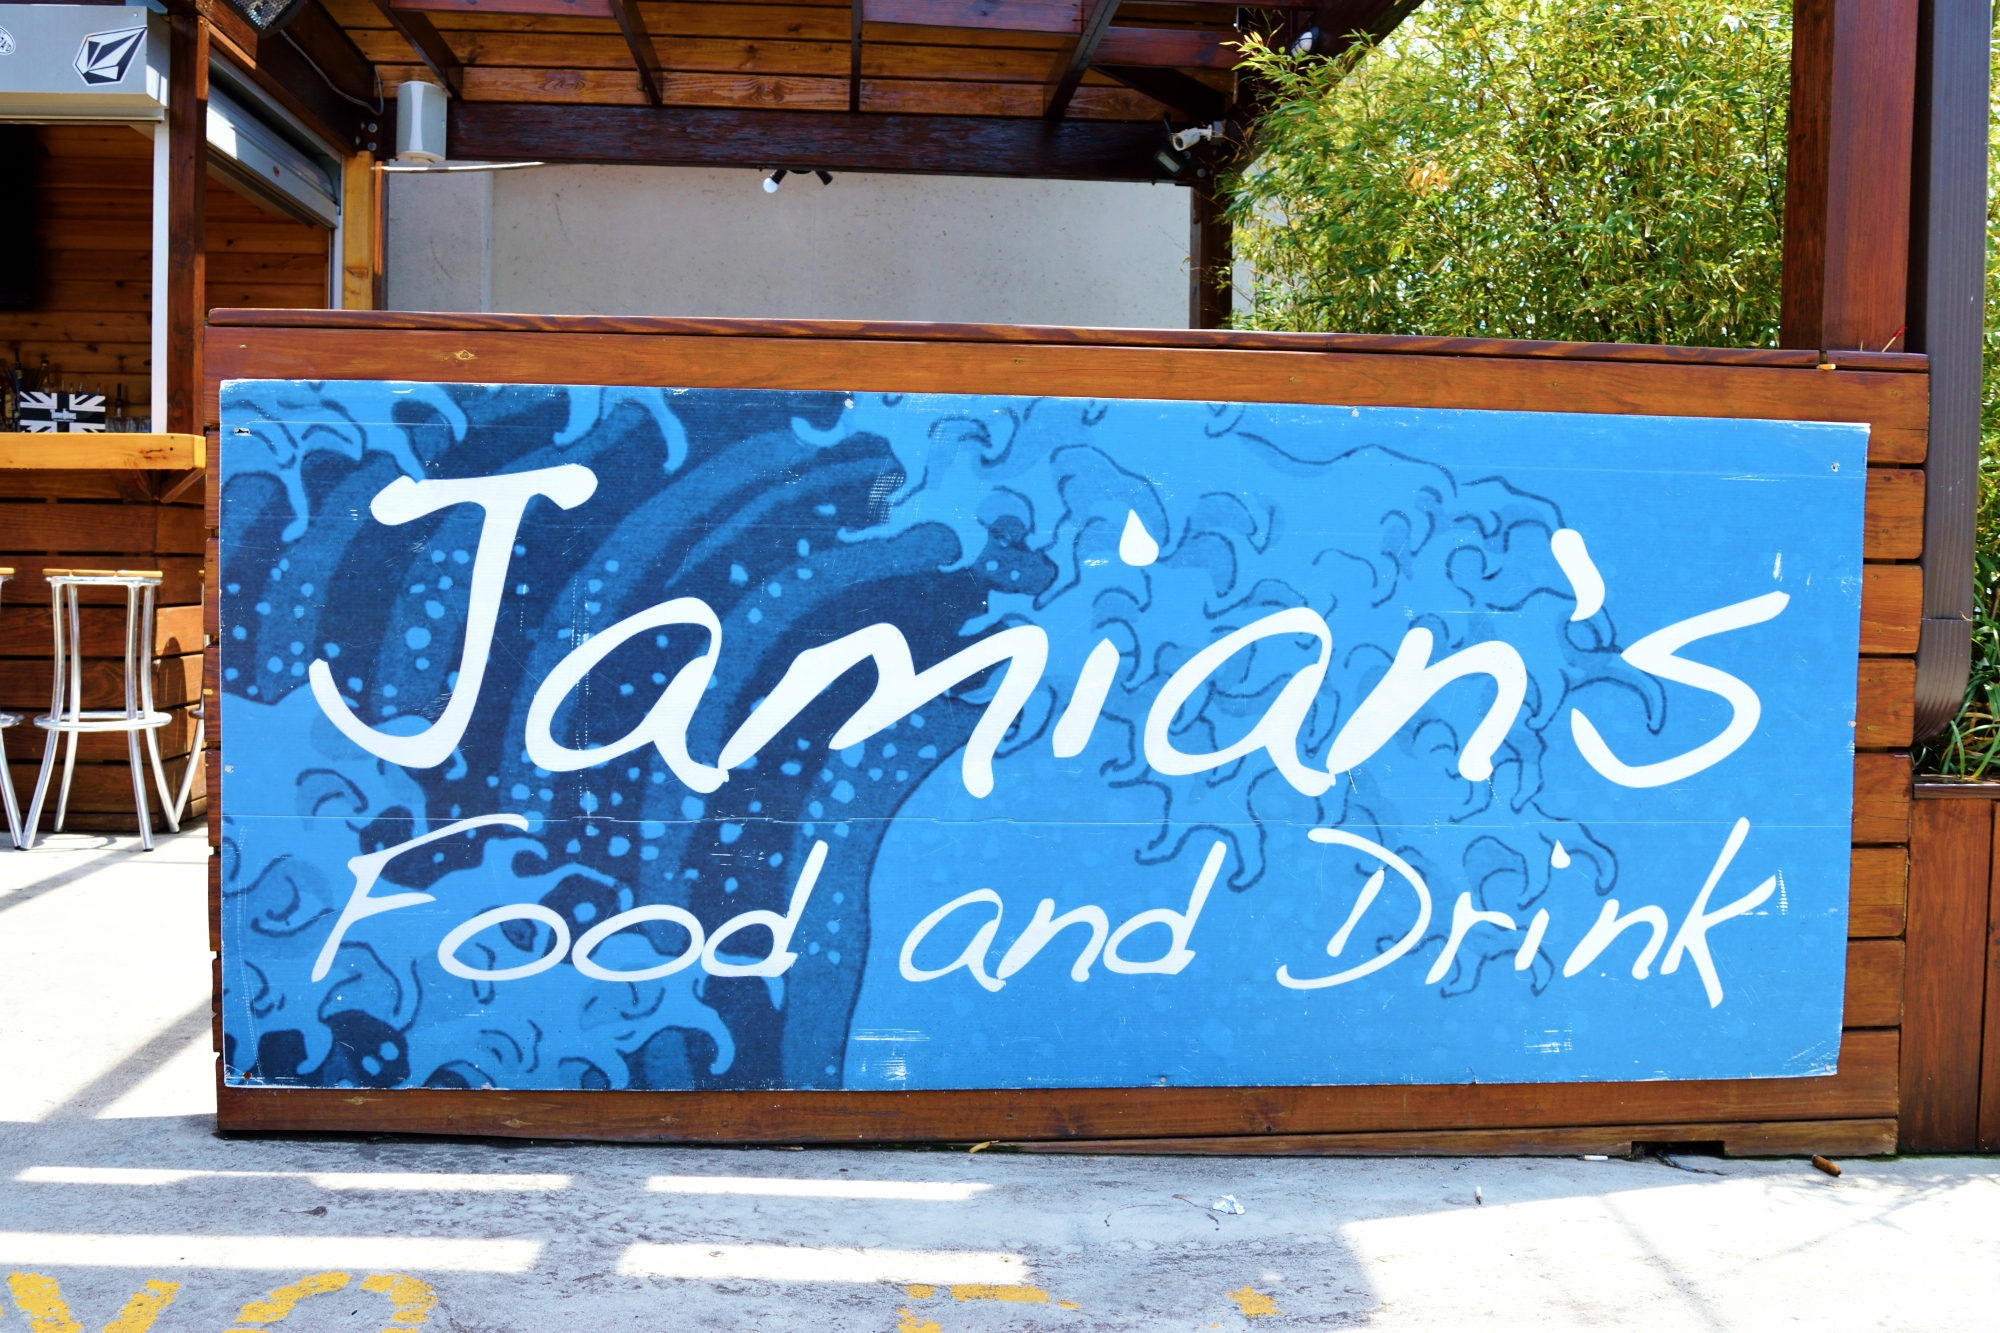 Looking for an outside bar in Red Bank - Jamian's Food and Drink has the hook up.